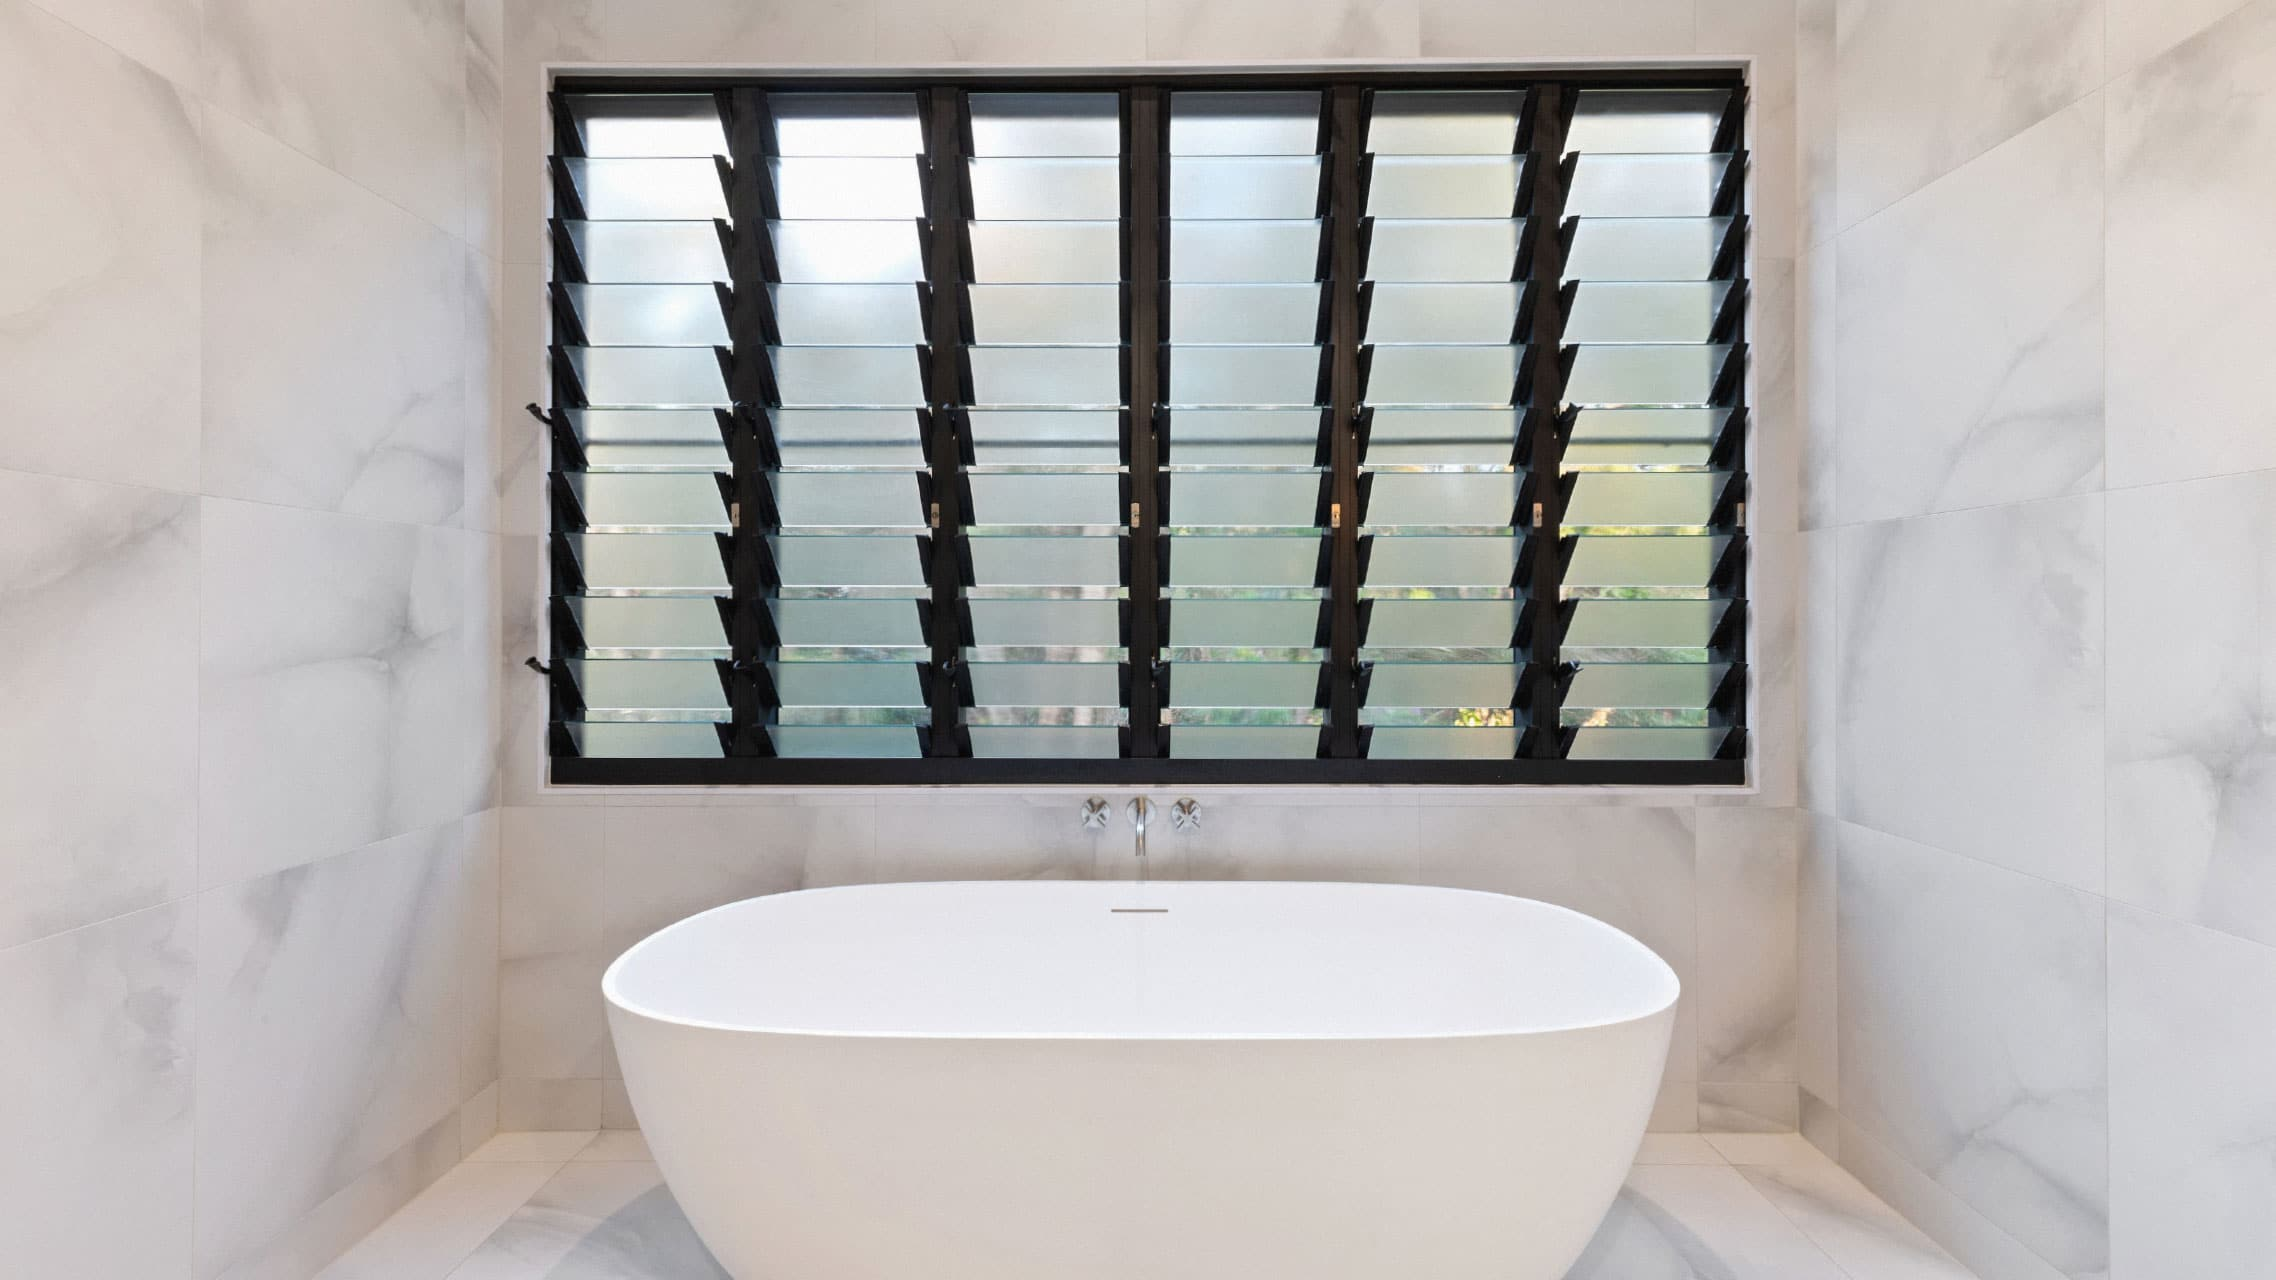 Louvre window with six bays in a bathroom